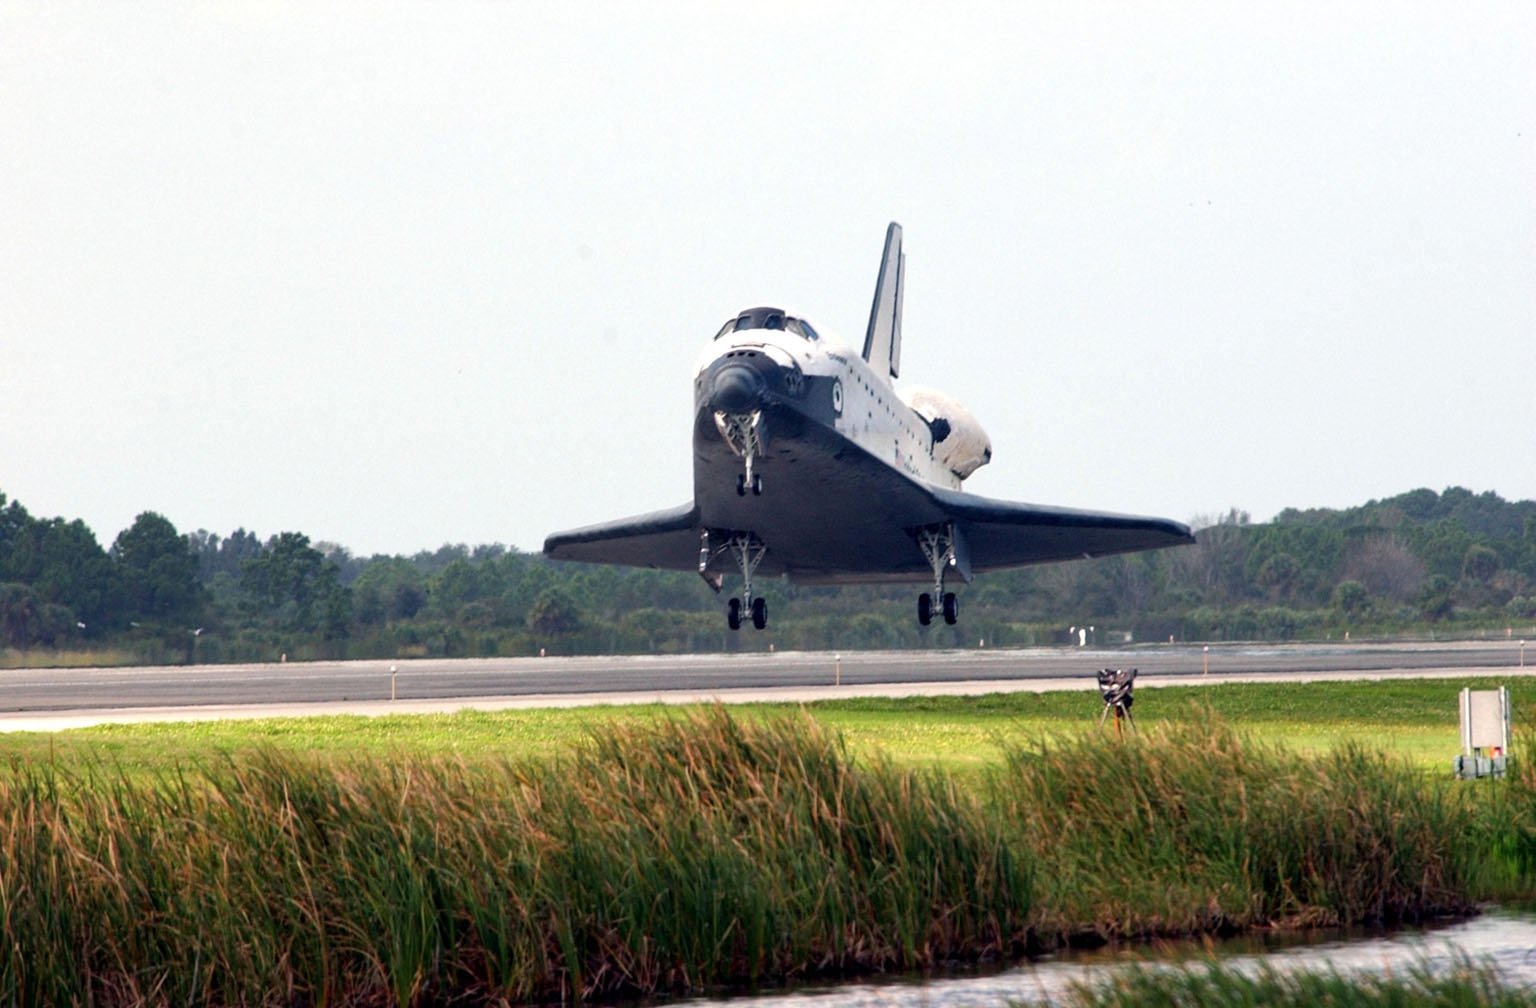 KENNEDY SPACE CENTER, FLA. -- Orbiter Endeavour approaches touchdown on Runway 15 at the KSC Shuttle Landing Facility, completing mission STS-108. After a mission-elapsed time of 11 days, 19 hours and 35 minutes, the landing is the 57th at KSC in the history of the program. Main gear touchdown occurred at 12:55:10 p.m. EST (17:55:10 GMT), nose gear touchdown at 12:55:23 p.m. (17:55:23 GMT) , wheel stop at 12:56:13 p.m. (17:56:13 GMT). STS-108 was the 12th mission to the International Space Station. This mission was the 107th flight in the Shuttle program and the 17th flight for the orbiter. Endeavour carries both the mission crew and the Expedition 3 crew - Commander Frank Culbertson and cosmonauts Vladimir Dezhurov and Mikhail Tyurin - who are returning to Earth after 129 days in space on the Space Station